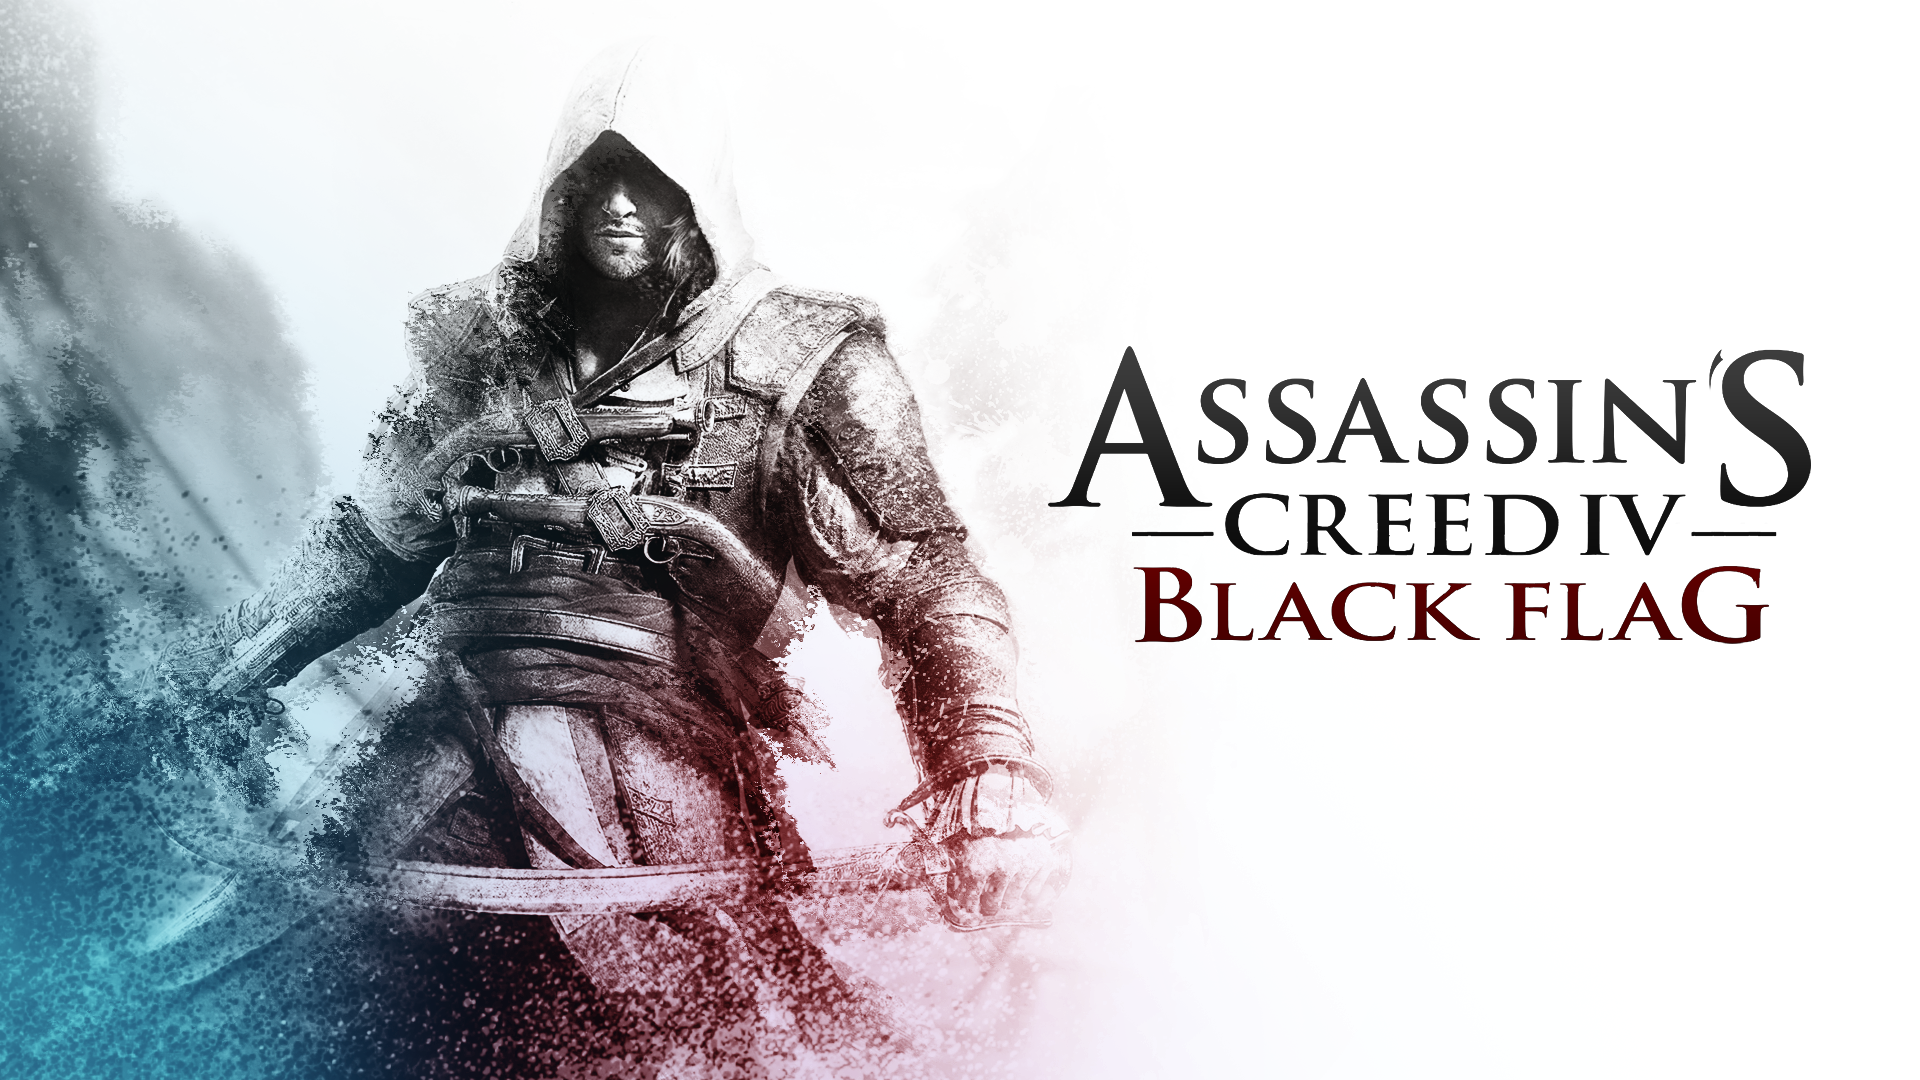 Assassin S Creed Iv Black Flag The Assassin S Wallpaper